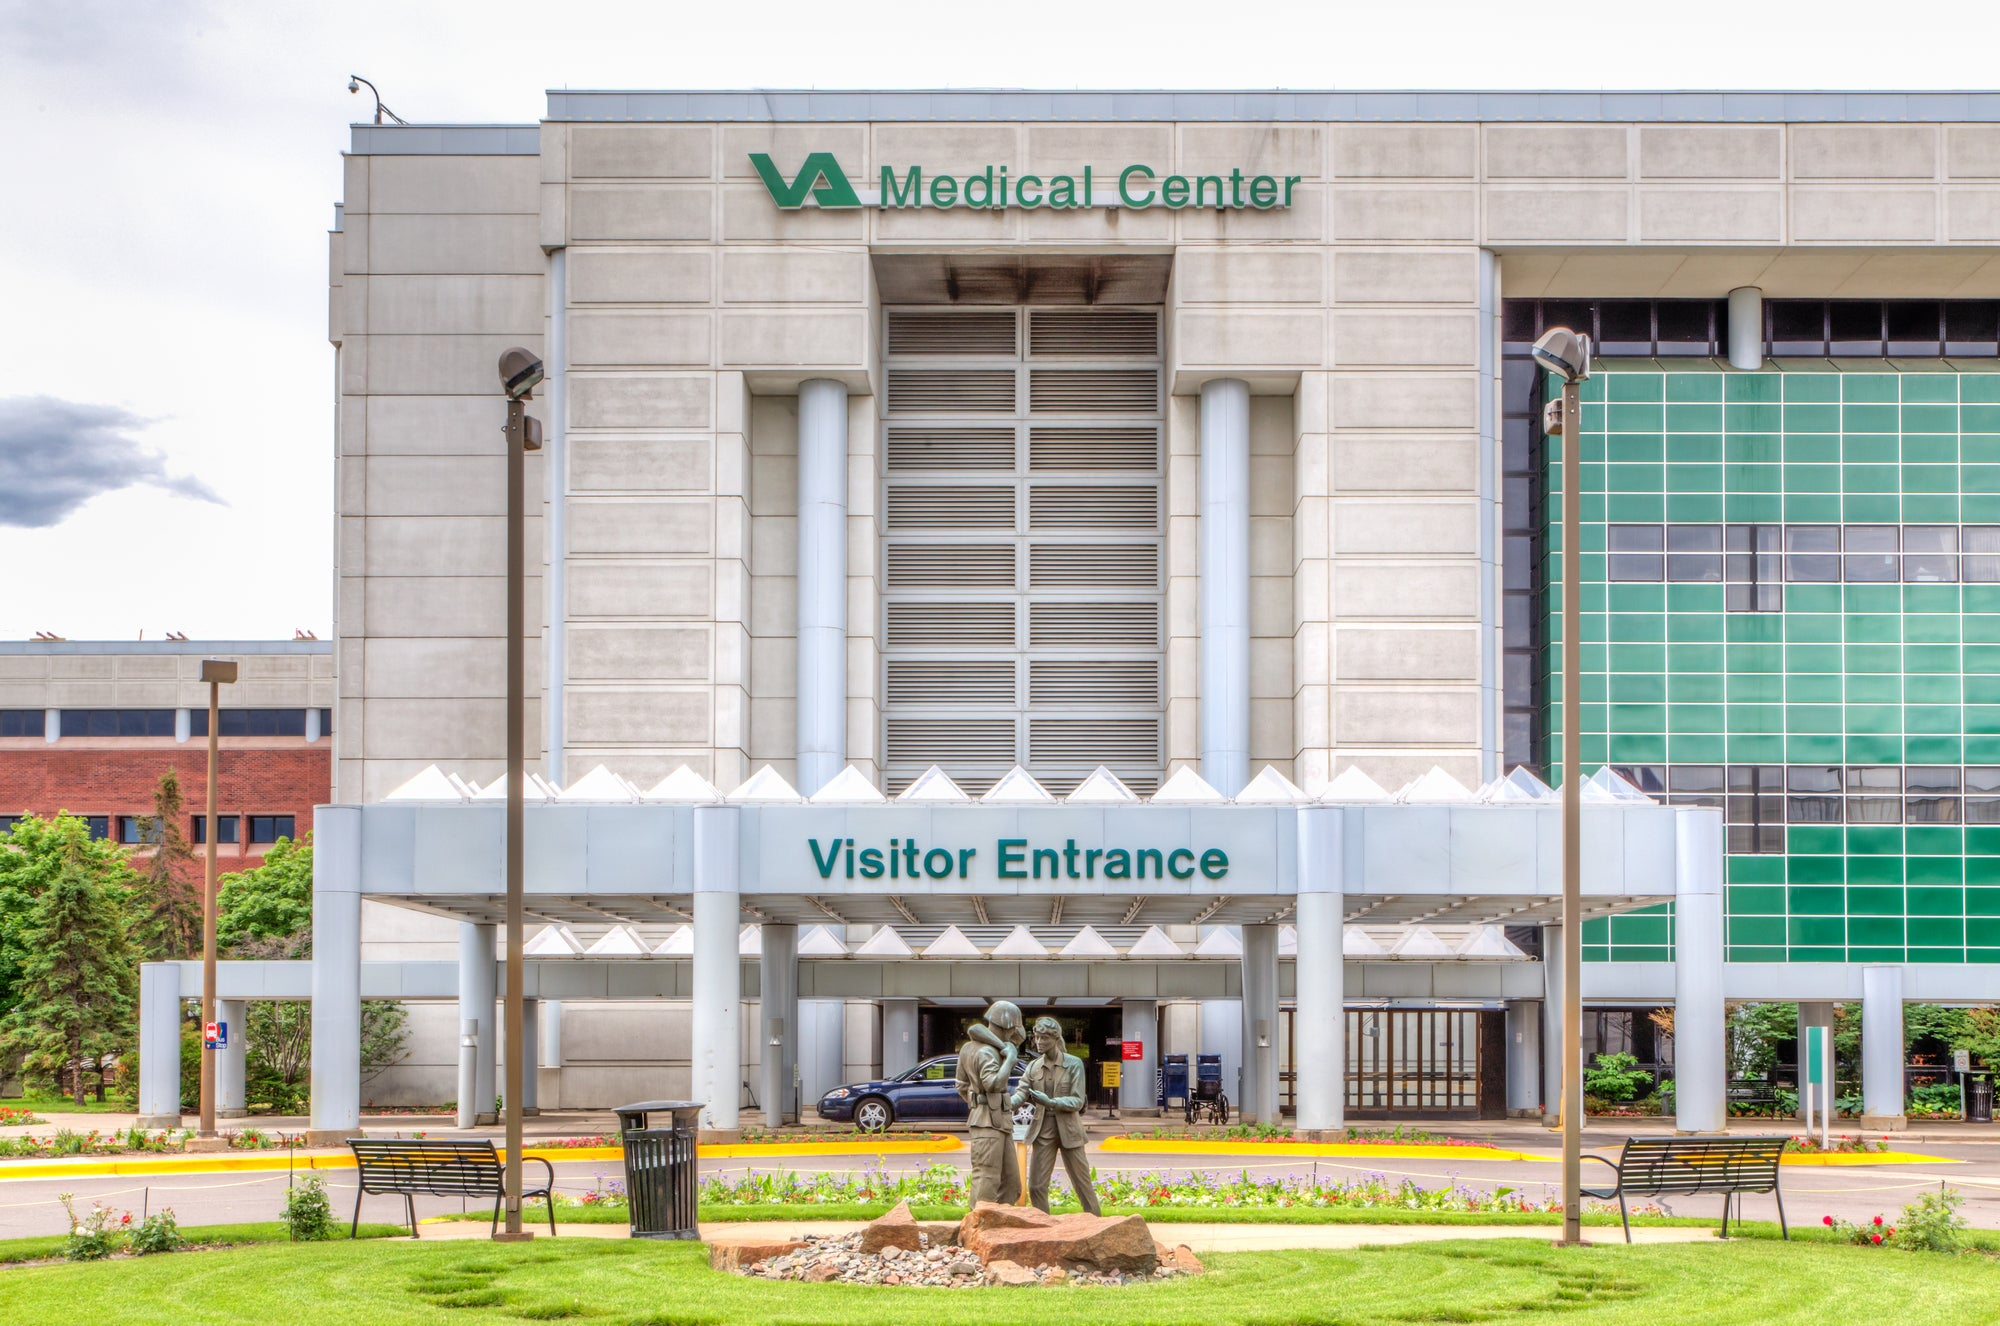 The visitor entrance of the Minneapolis VA Medical Center